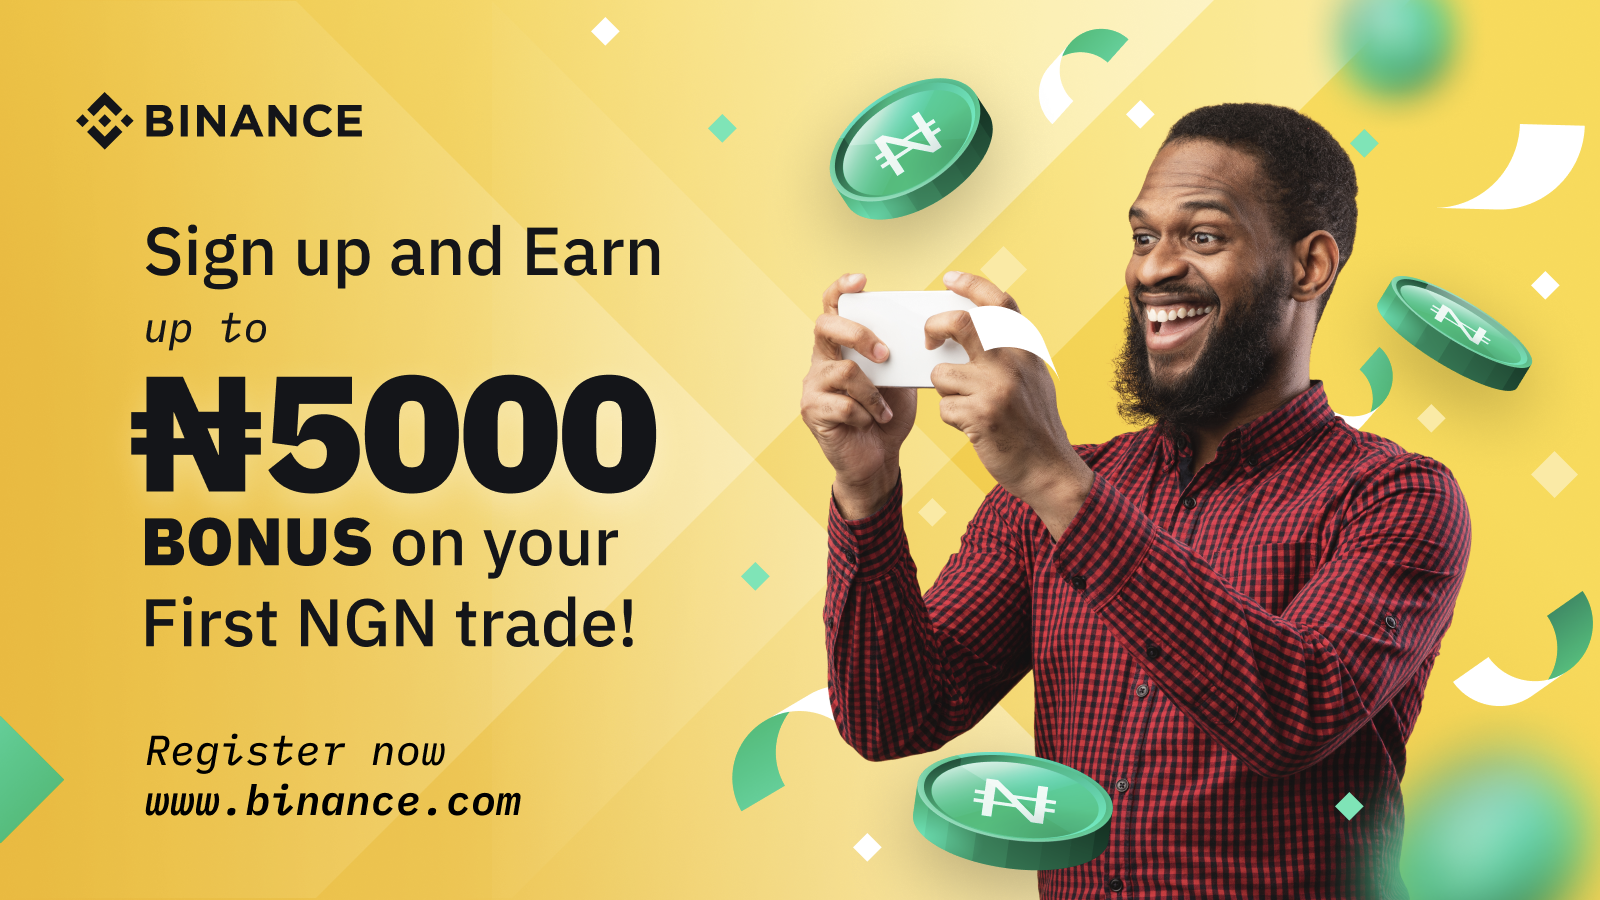 Earn Up To 5,000 NGN Just By Signing Up On Binance.com